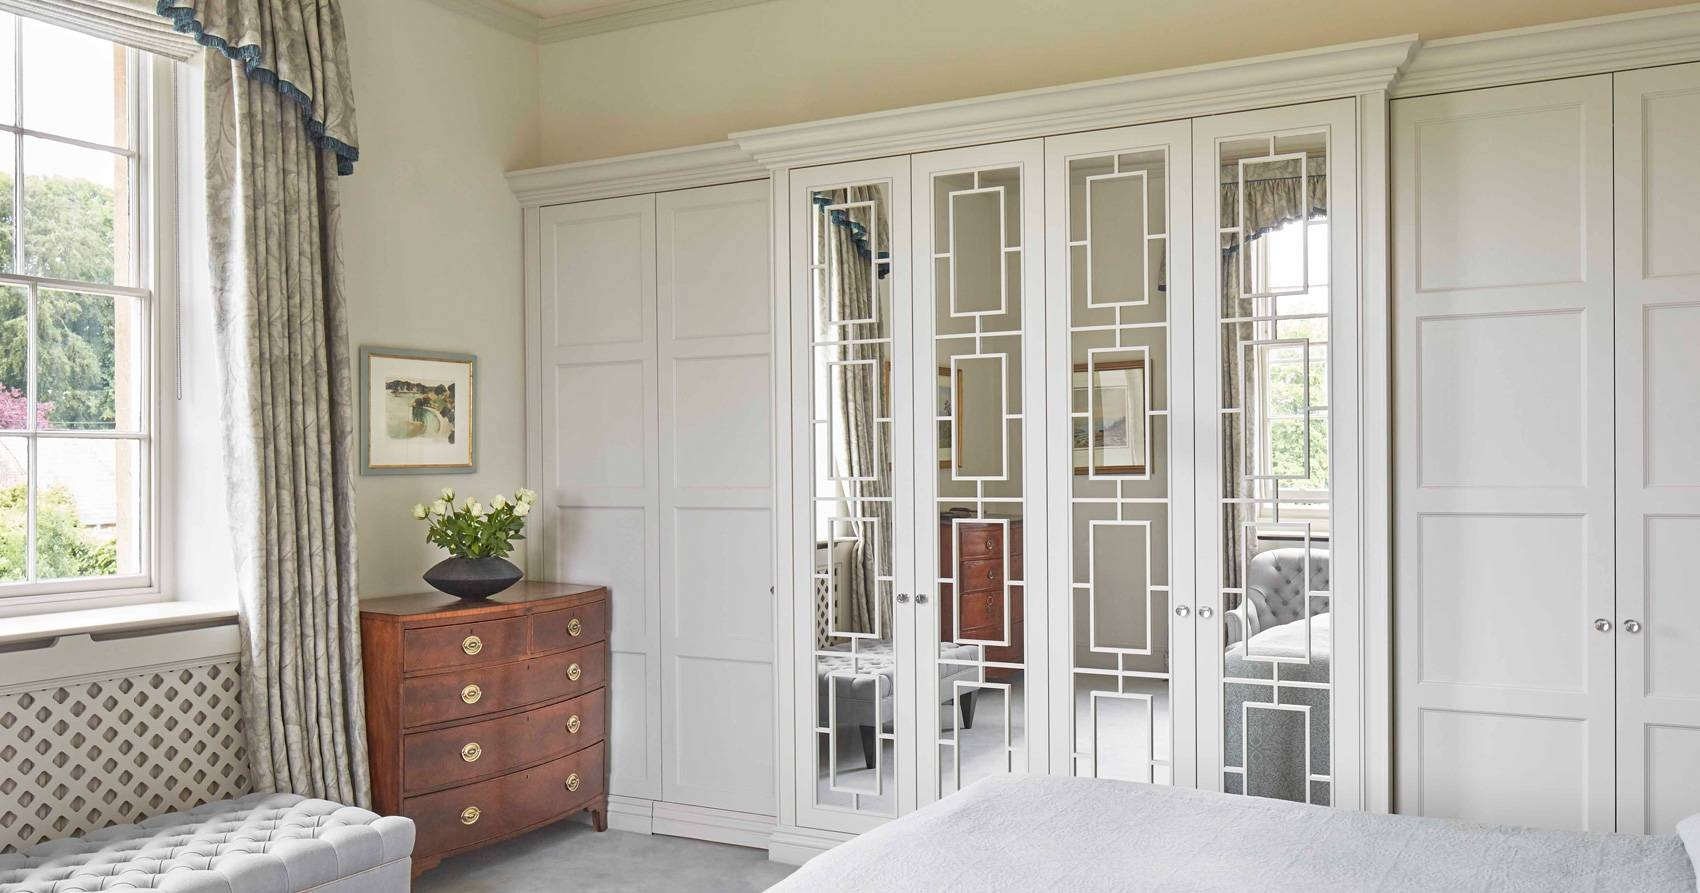 Luxury Bespoke Wardrobes London | The Heritage Wardrobe Company intended for French Built in Wardrobes (Image 13 of 15)